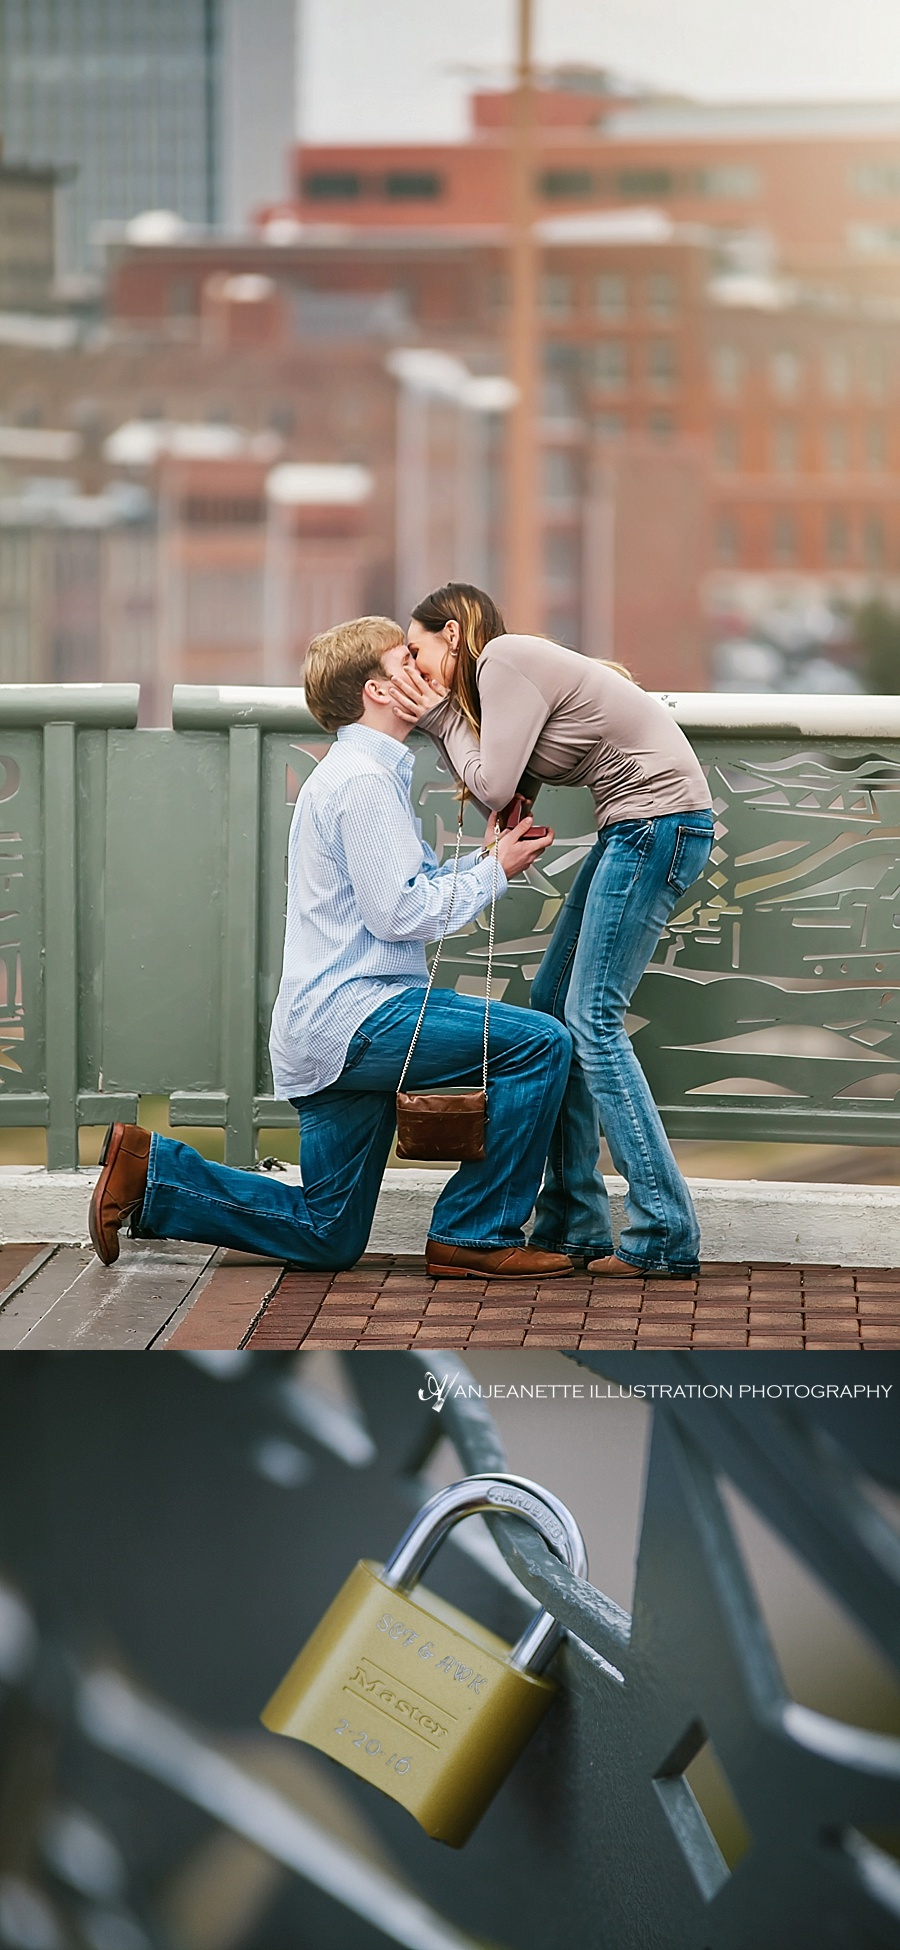 Nashville Artistic Proposal Photographer Anjeanette Illustration Photography